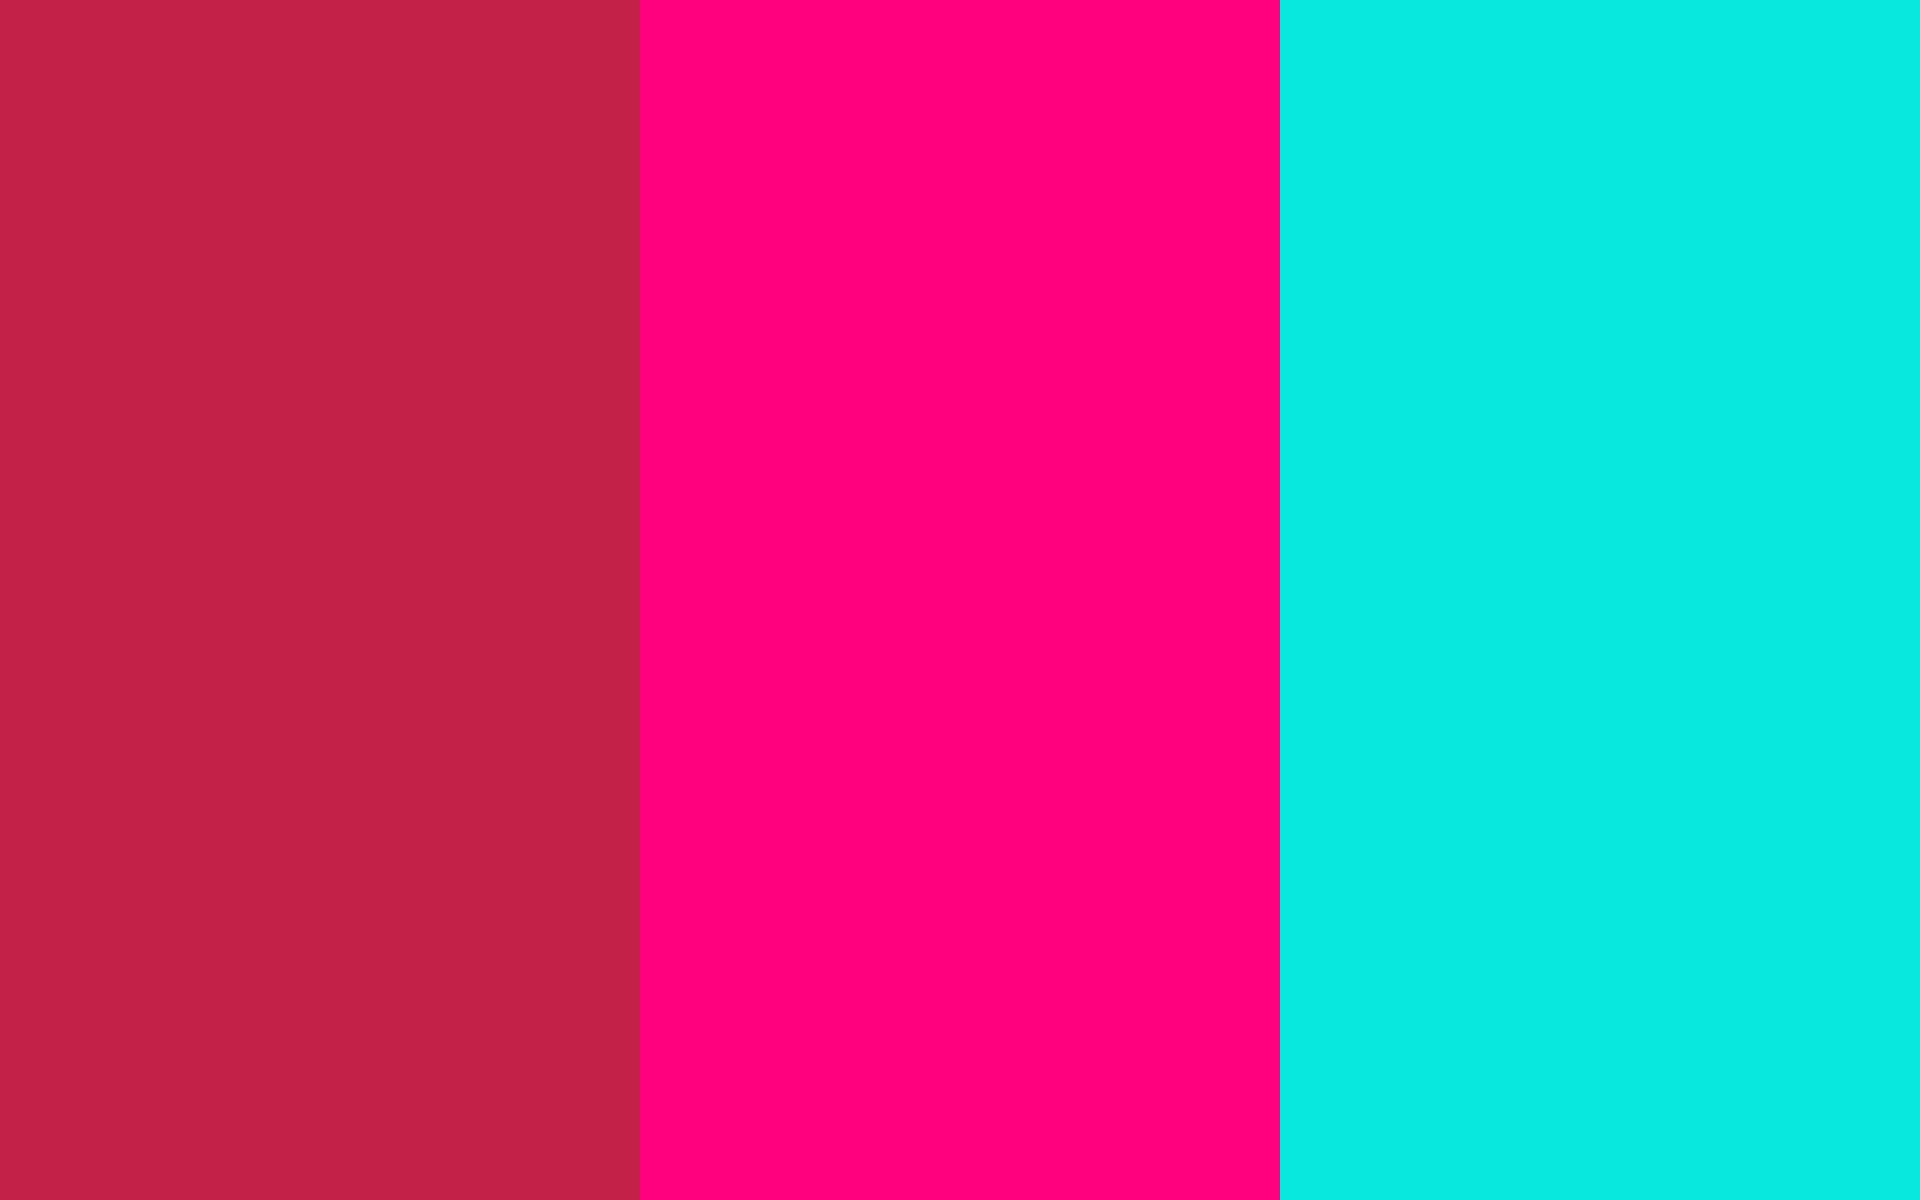 The Color Neon Pink For   neon pink color 1920x1200